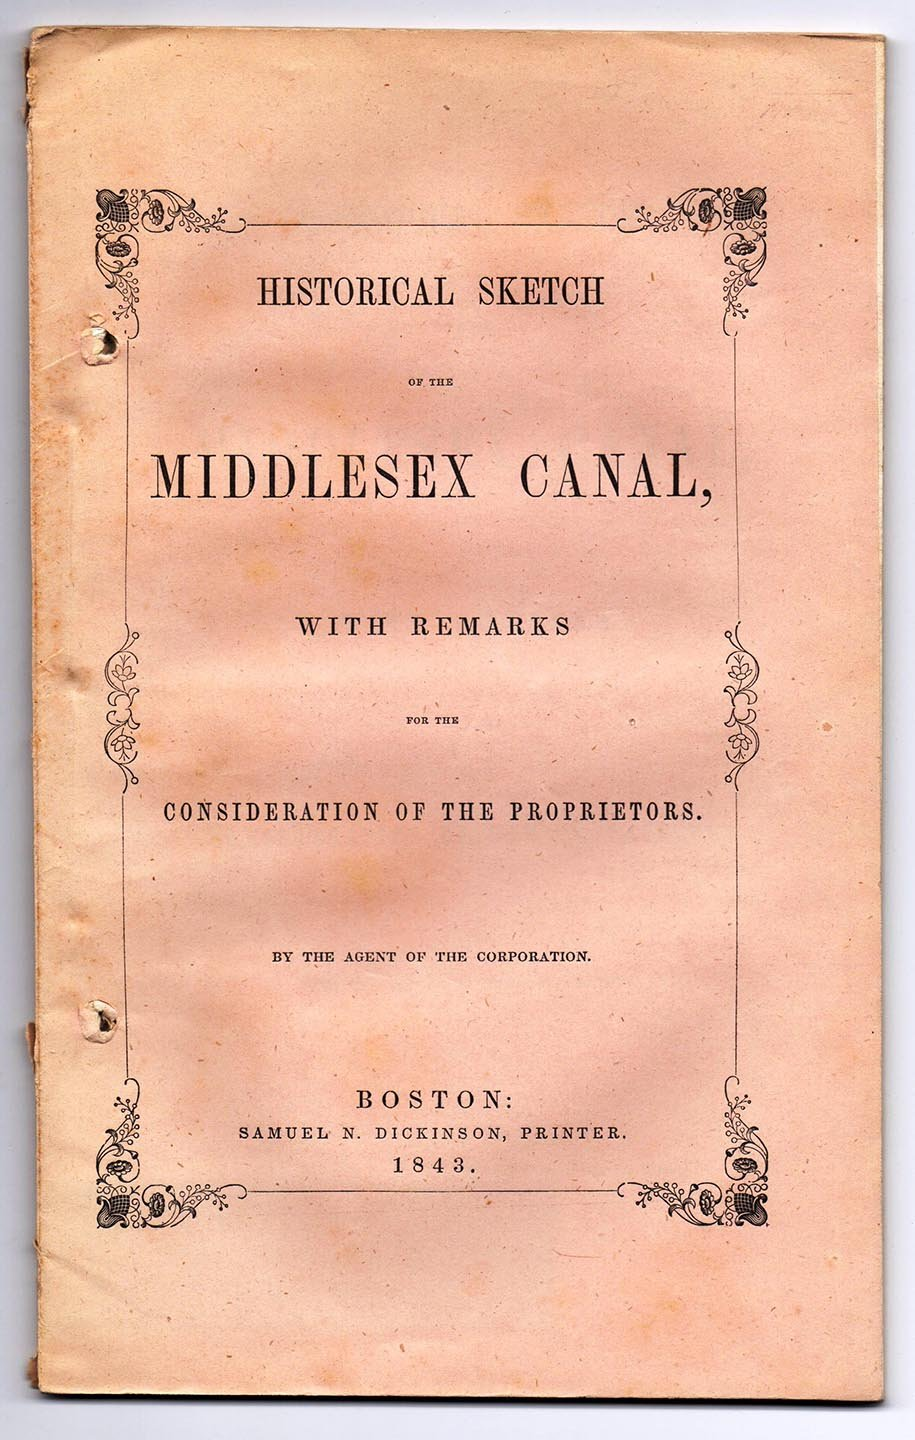 Historical Sketch of the Middlesex Canal: With Remarks for the Consideration of the Proprietors